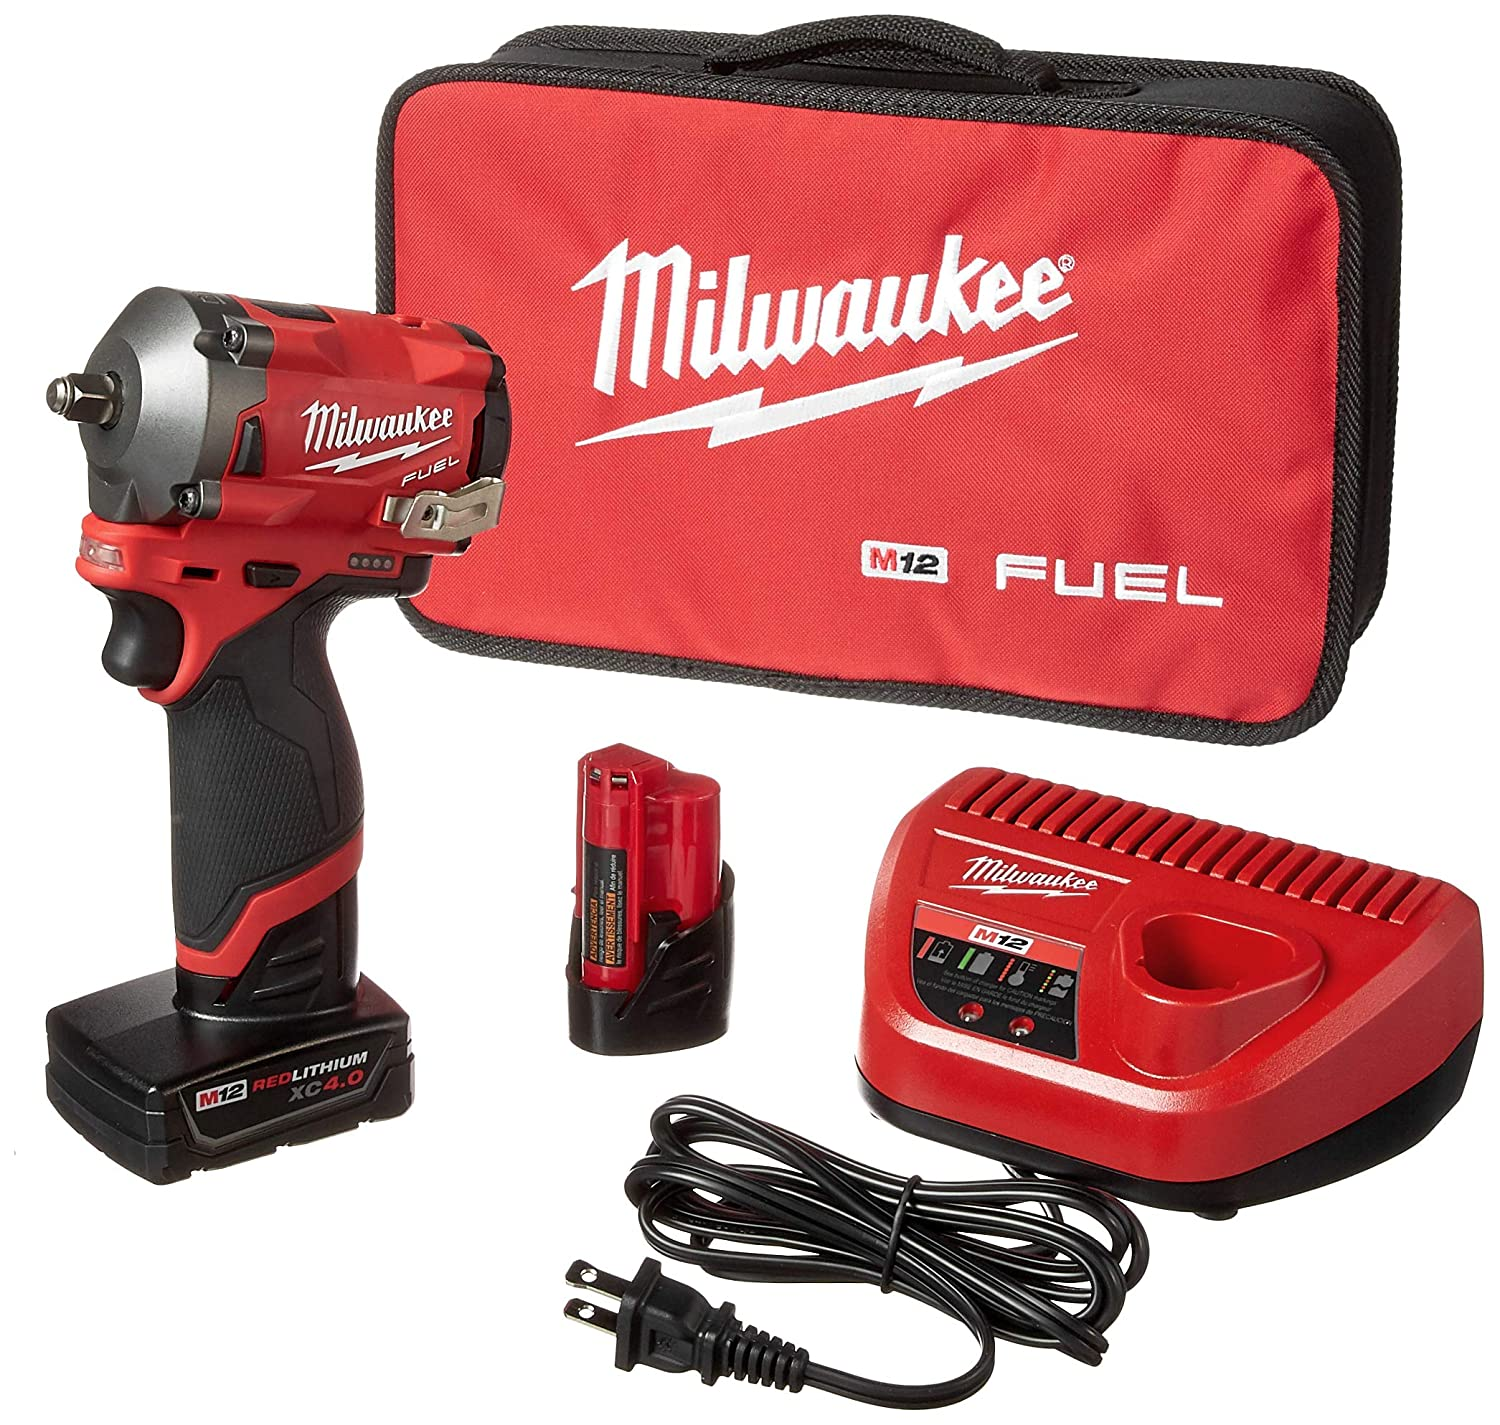 MILWAUKEE M12 FUEL Stubby 3 8 in.